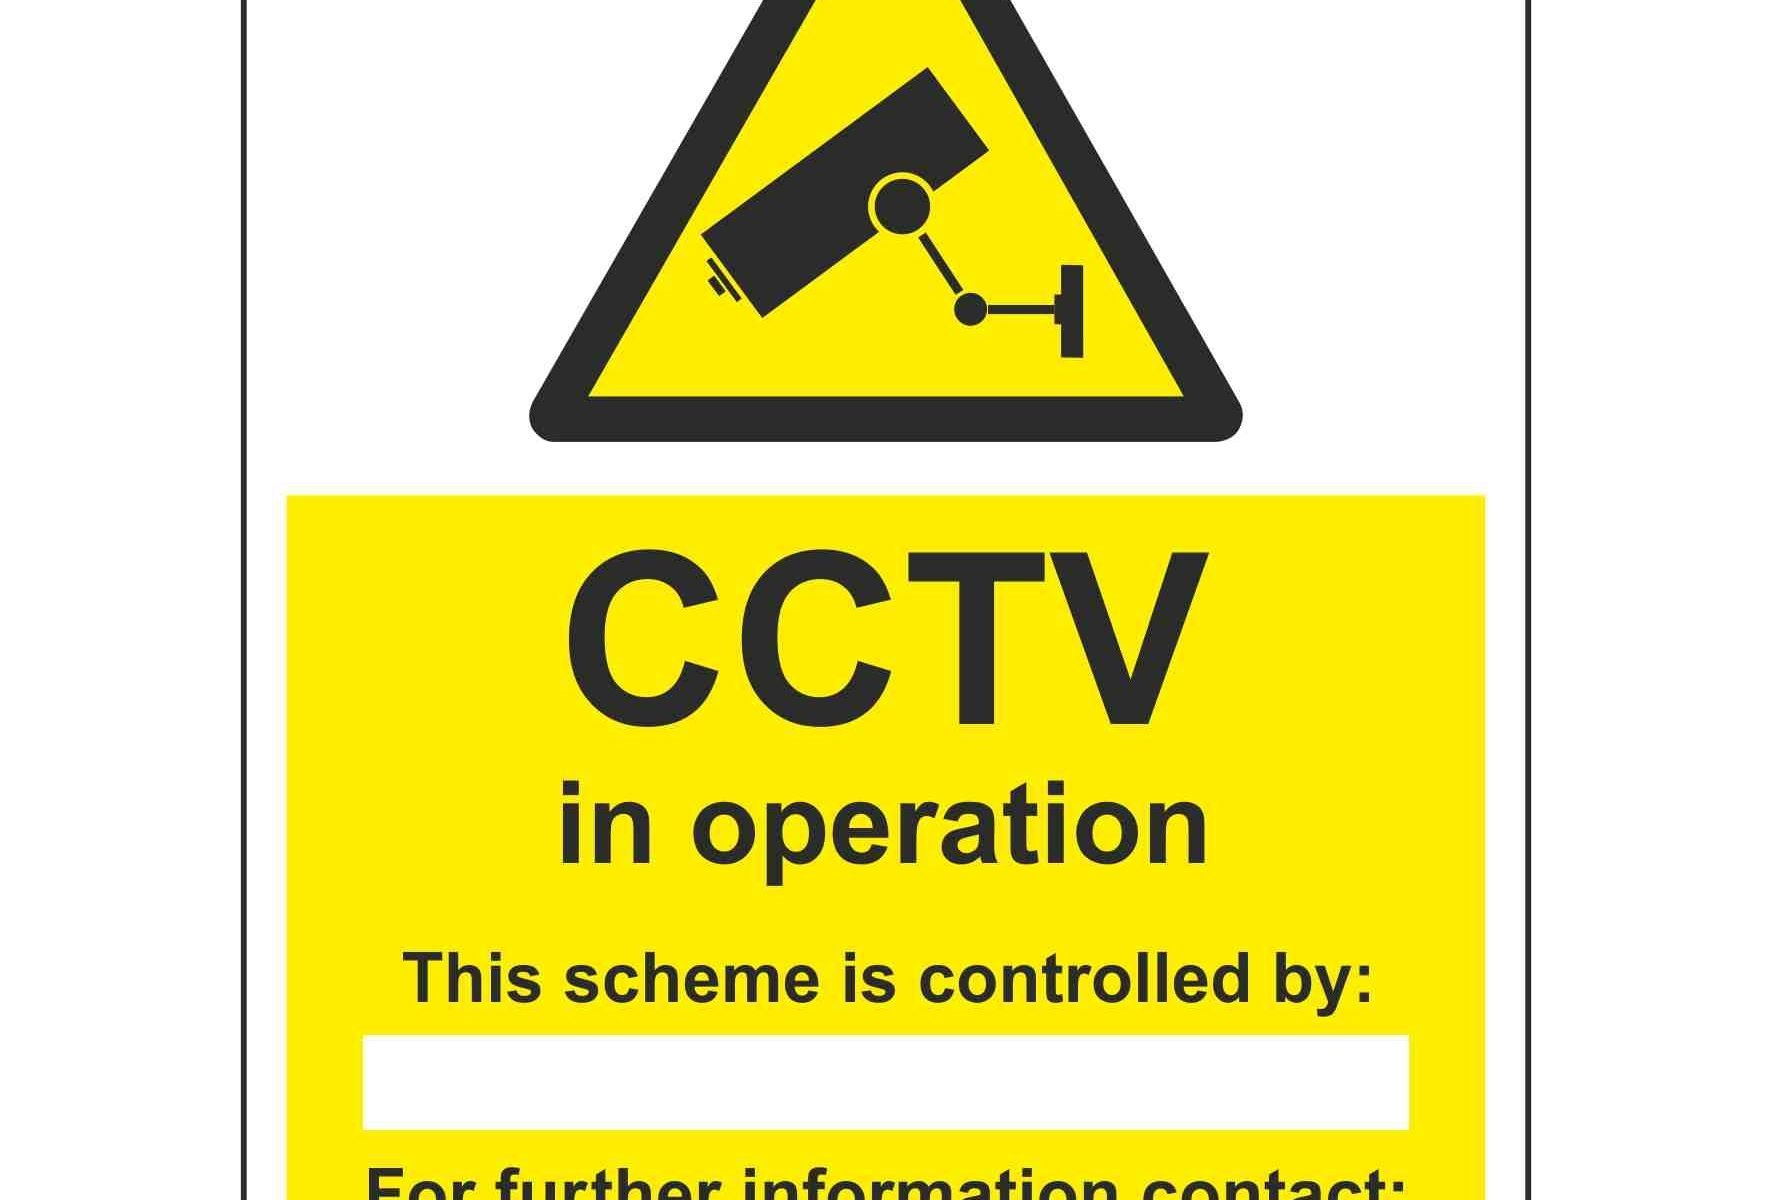 CCTV in operation This scheme is controlled by For further information contact